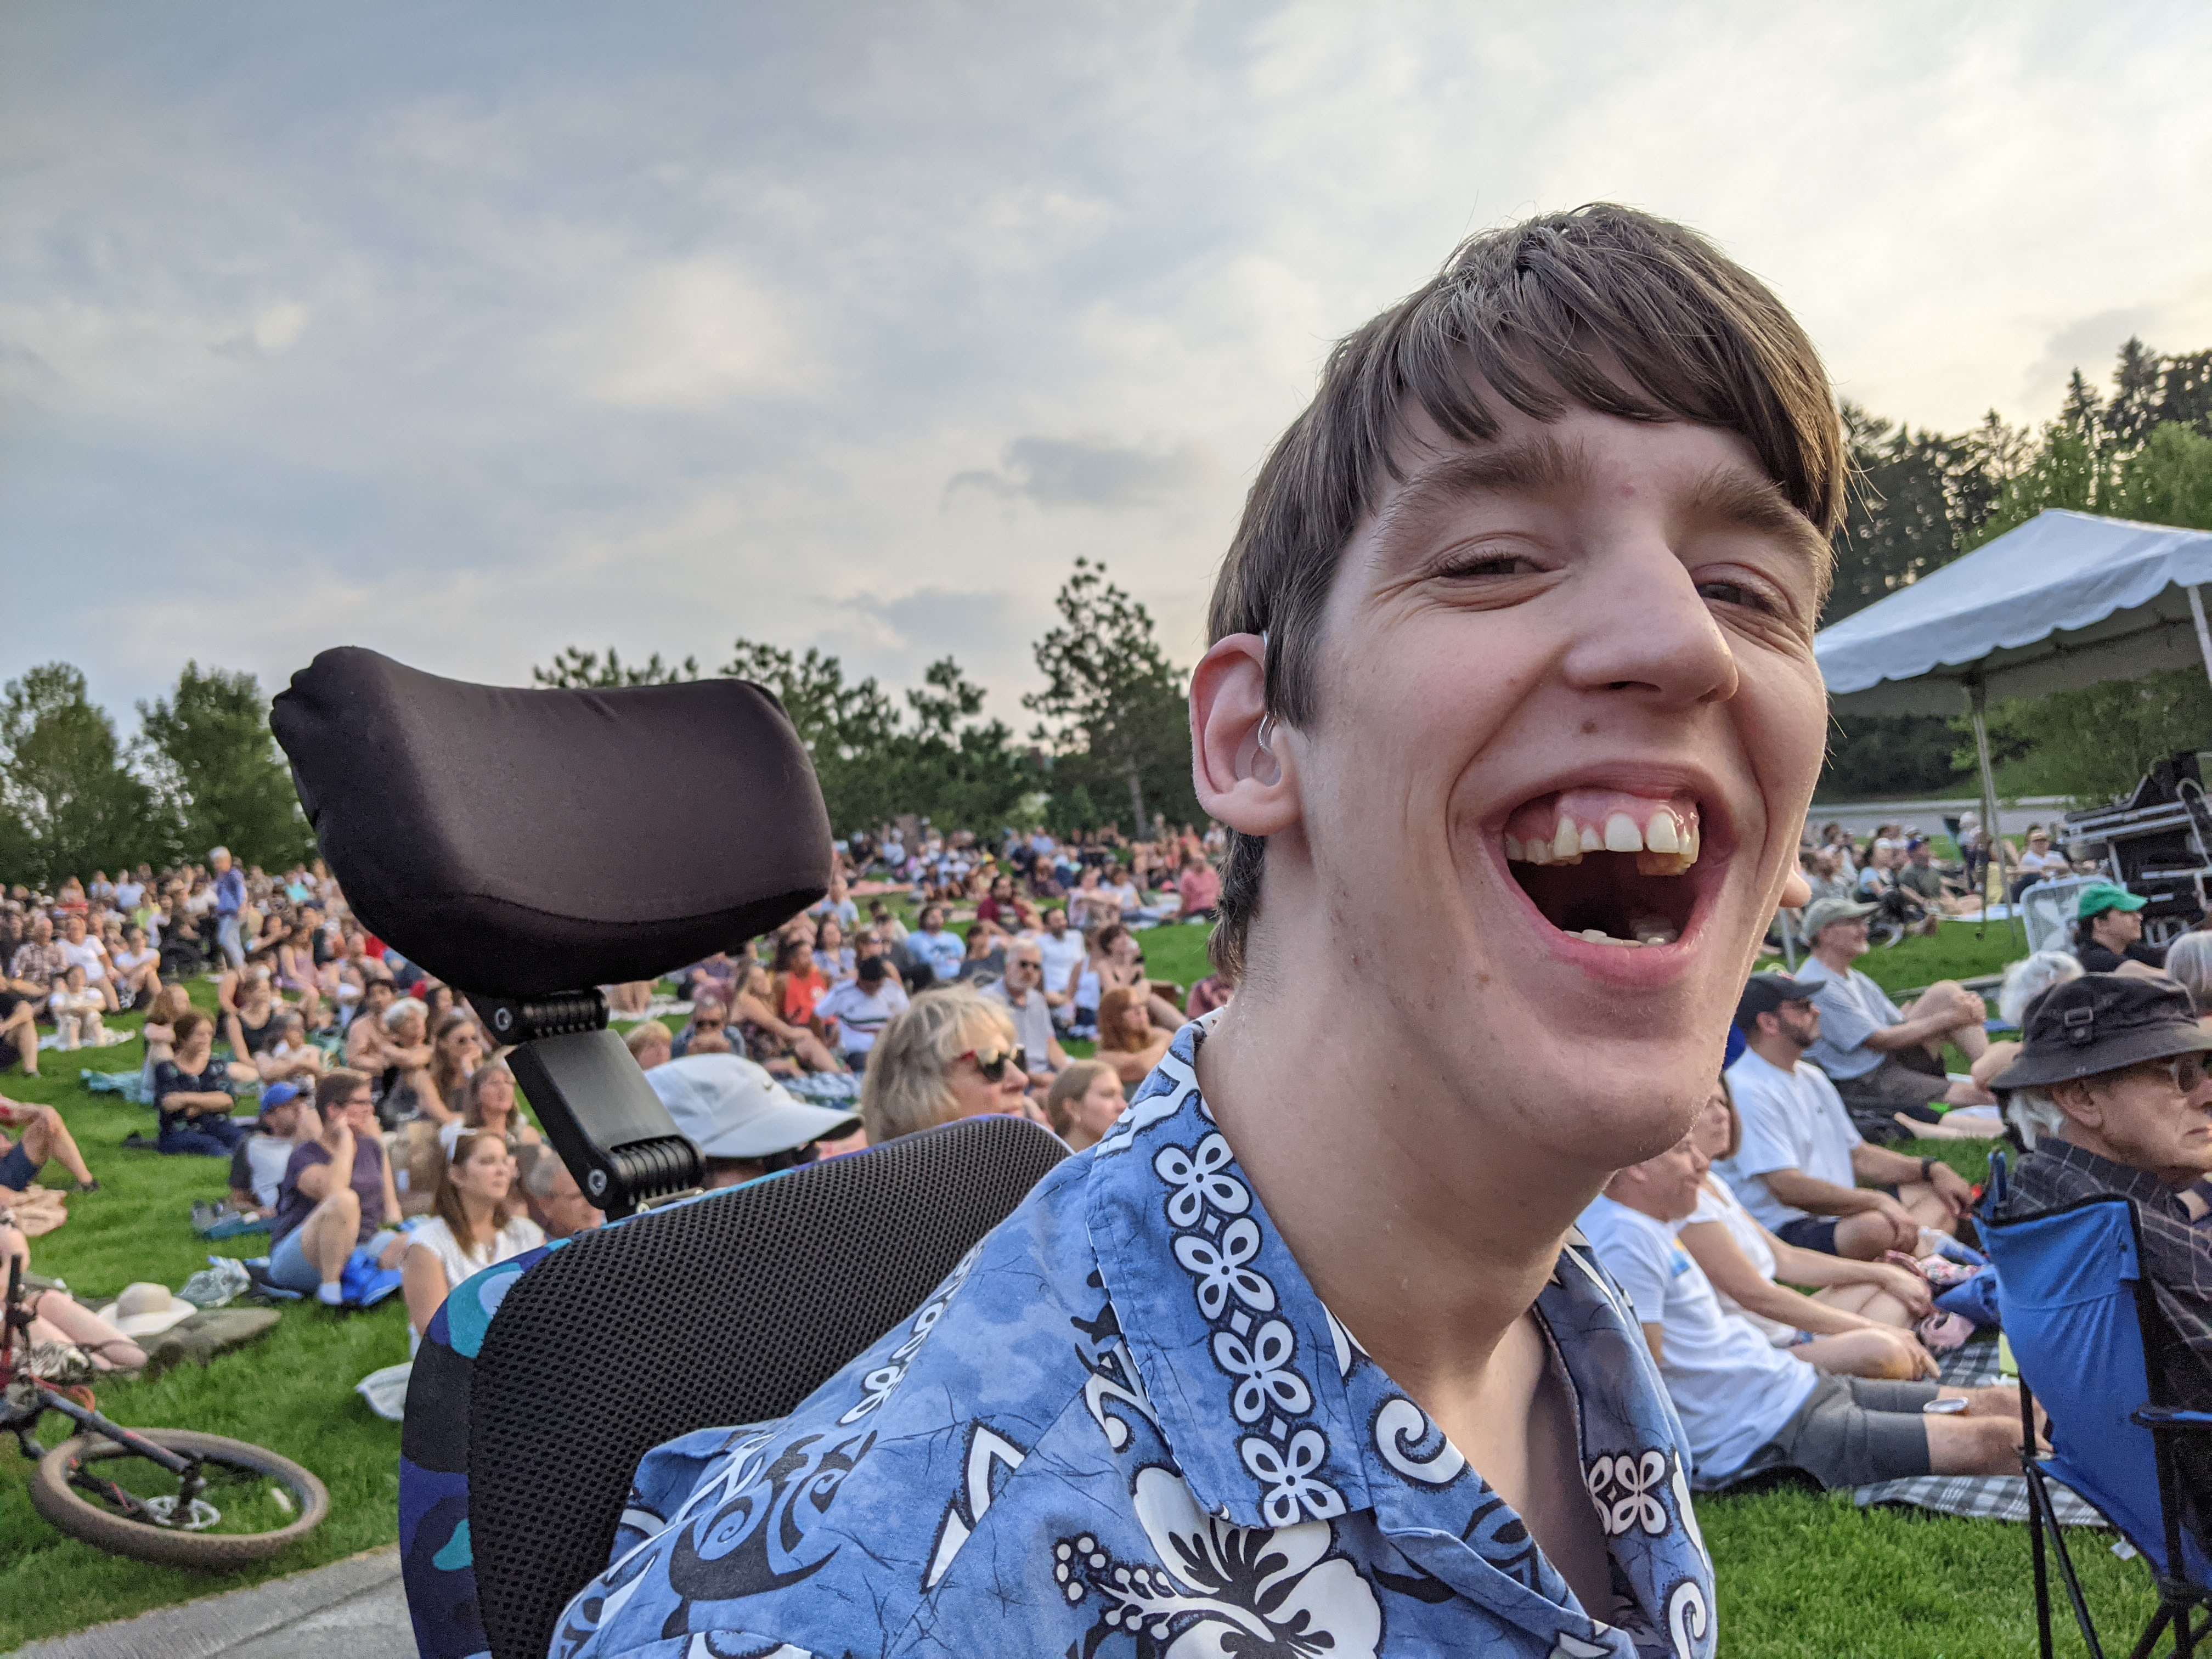 Justin in wheelchair, laughing, hillside behind filled with people watching jazz concert